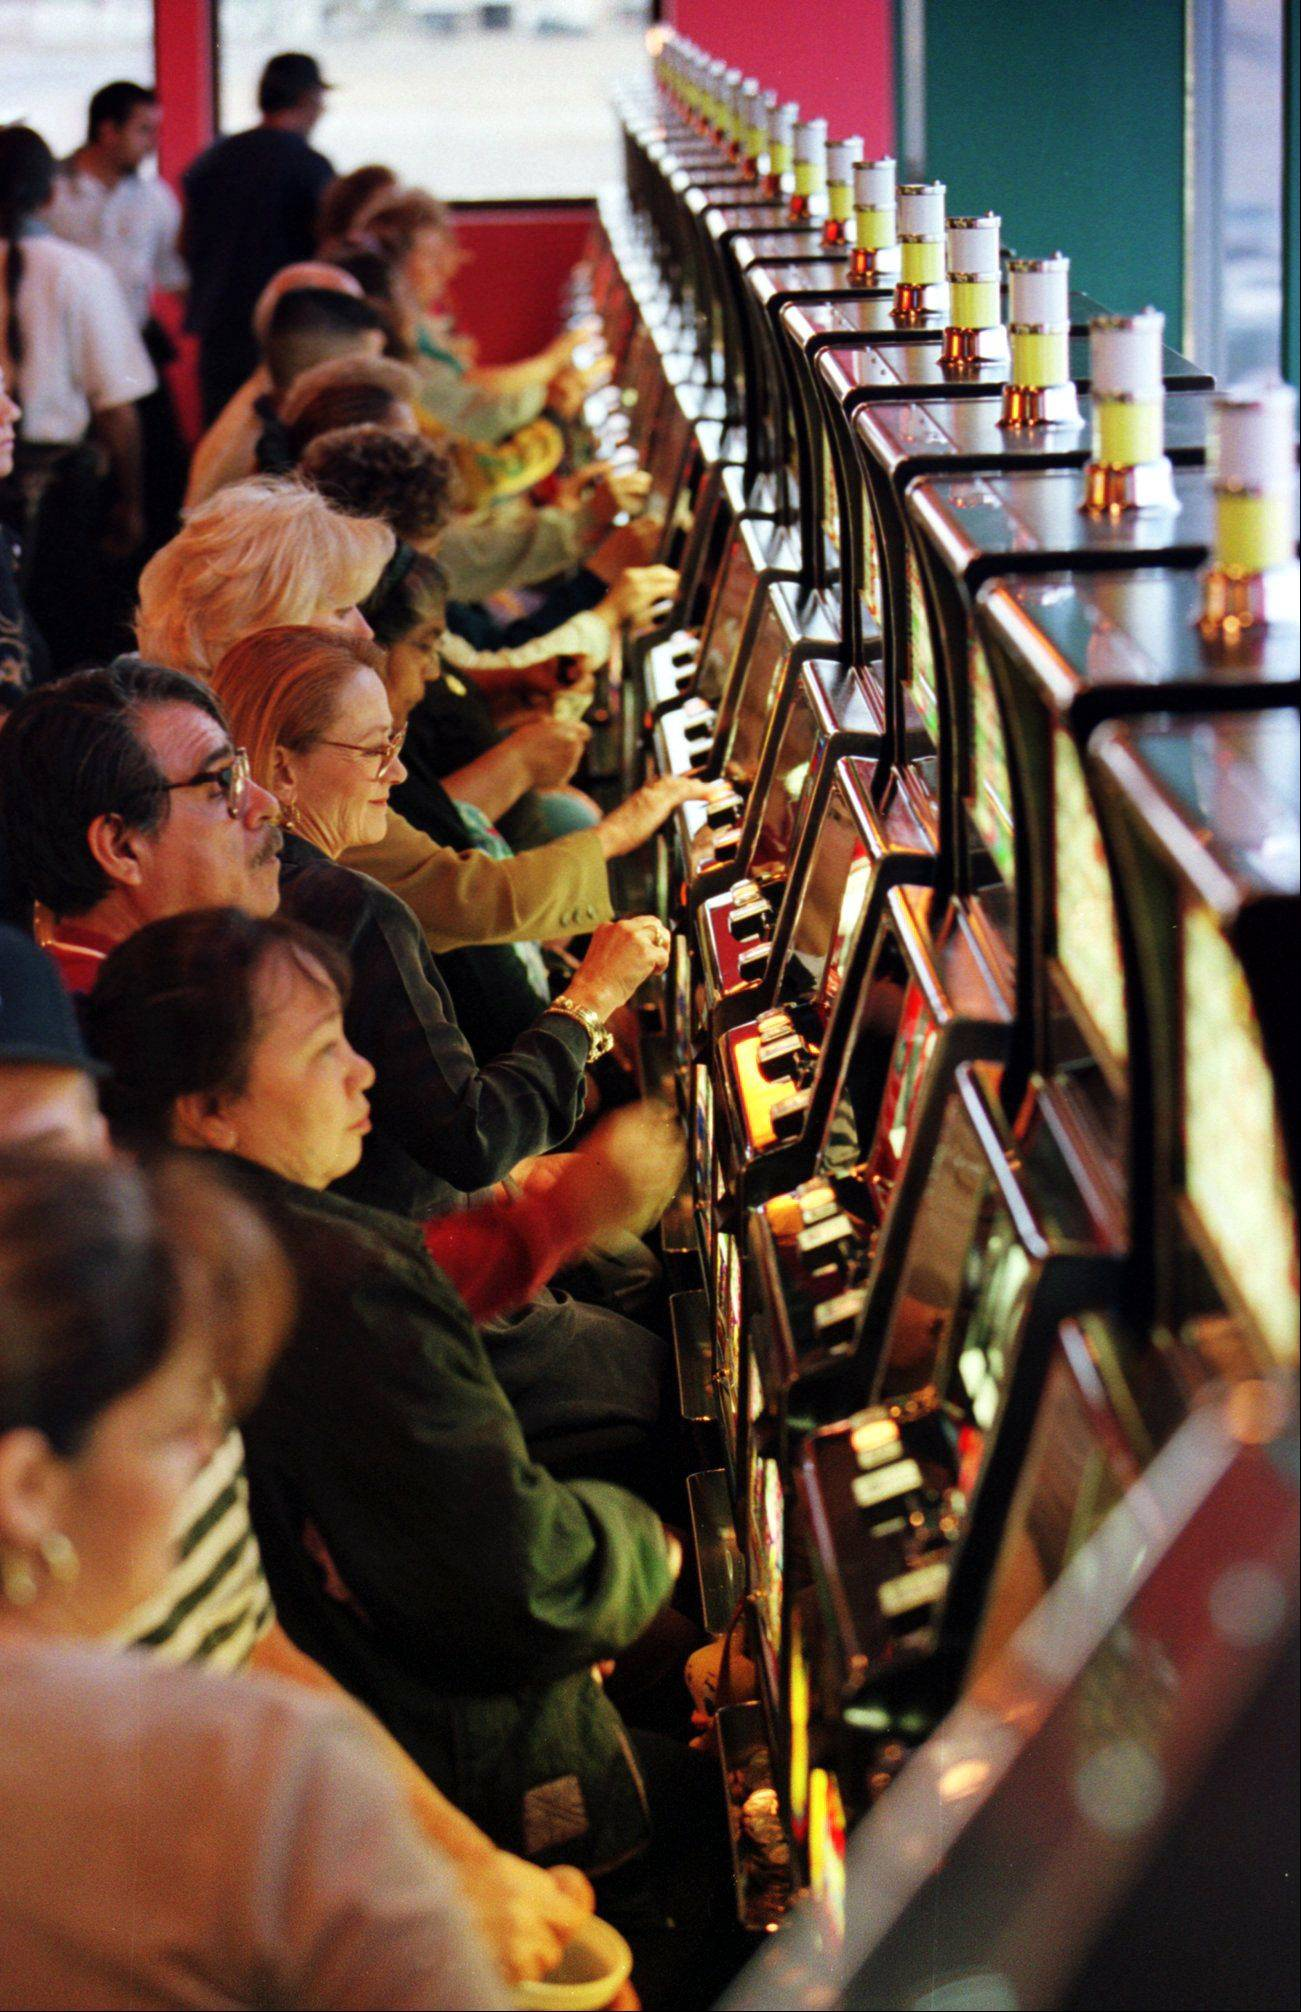 A sweeping plan that would put video gambling machines in bars throughout the suburbs and Illinois remained on track Monday after the Illinois Supreme Court ruled the law could stand.